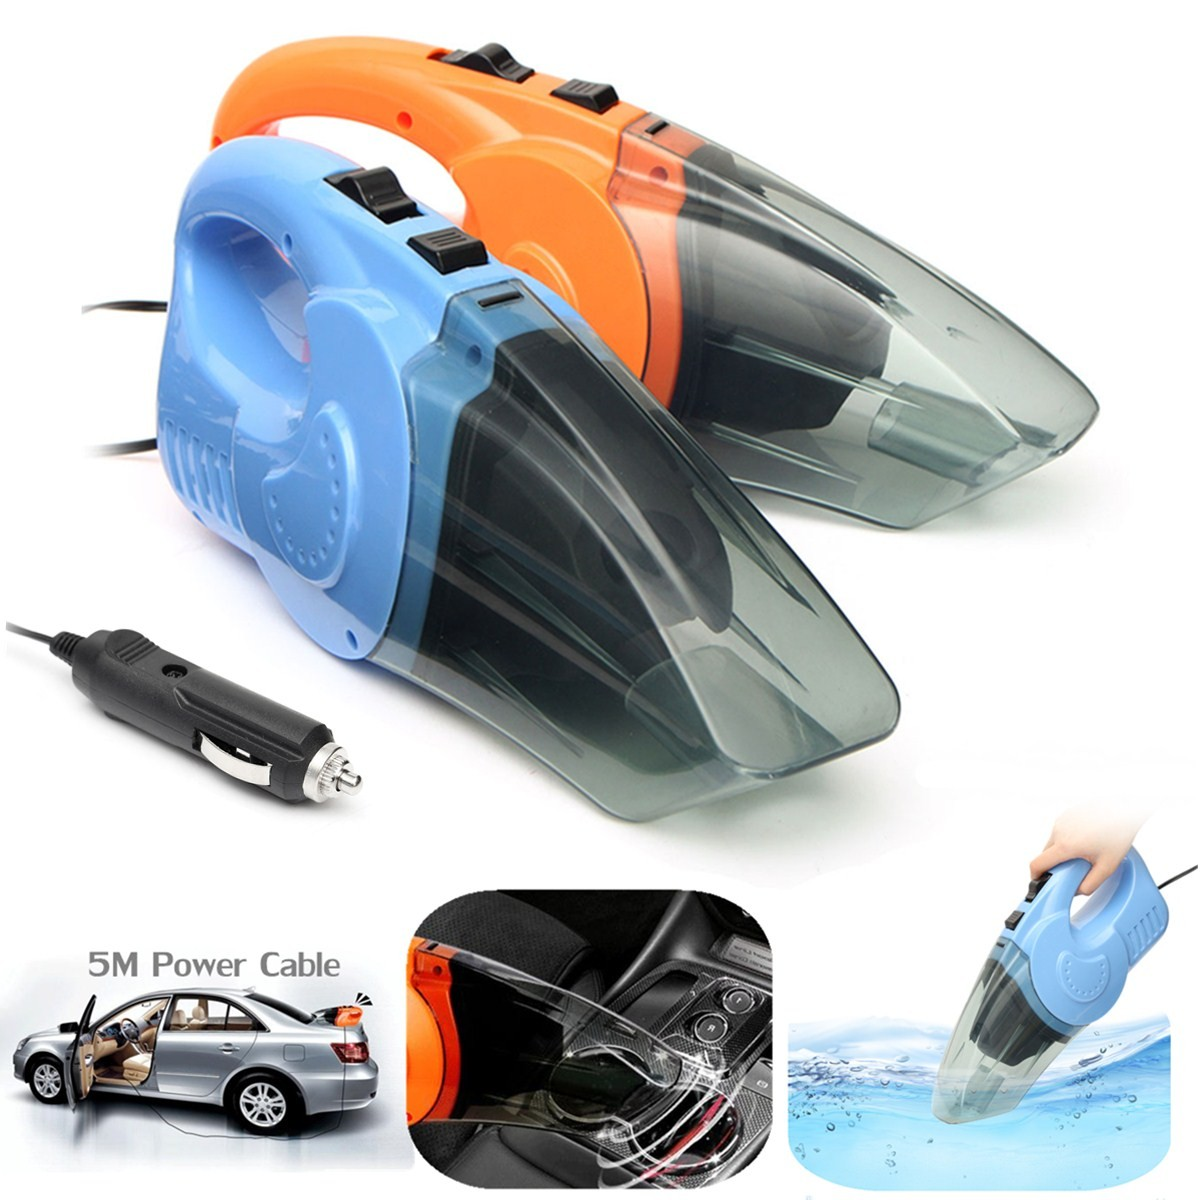 Brand New 12V 120W Super Suction Handheld Wet Dry Car Vacuum Cleaner w/ 16FT Cord 5 Meter Cable(China (Mainland))